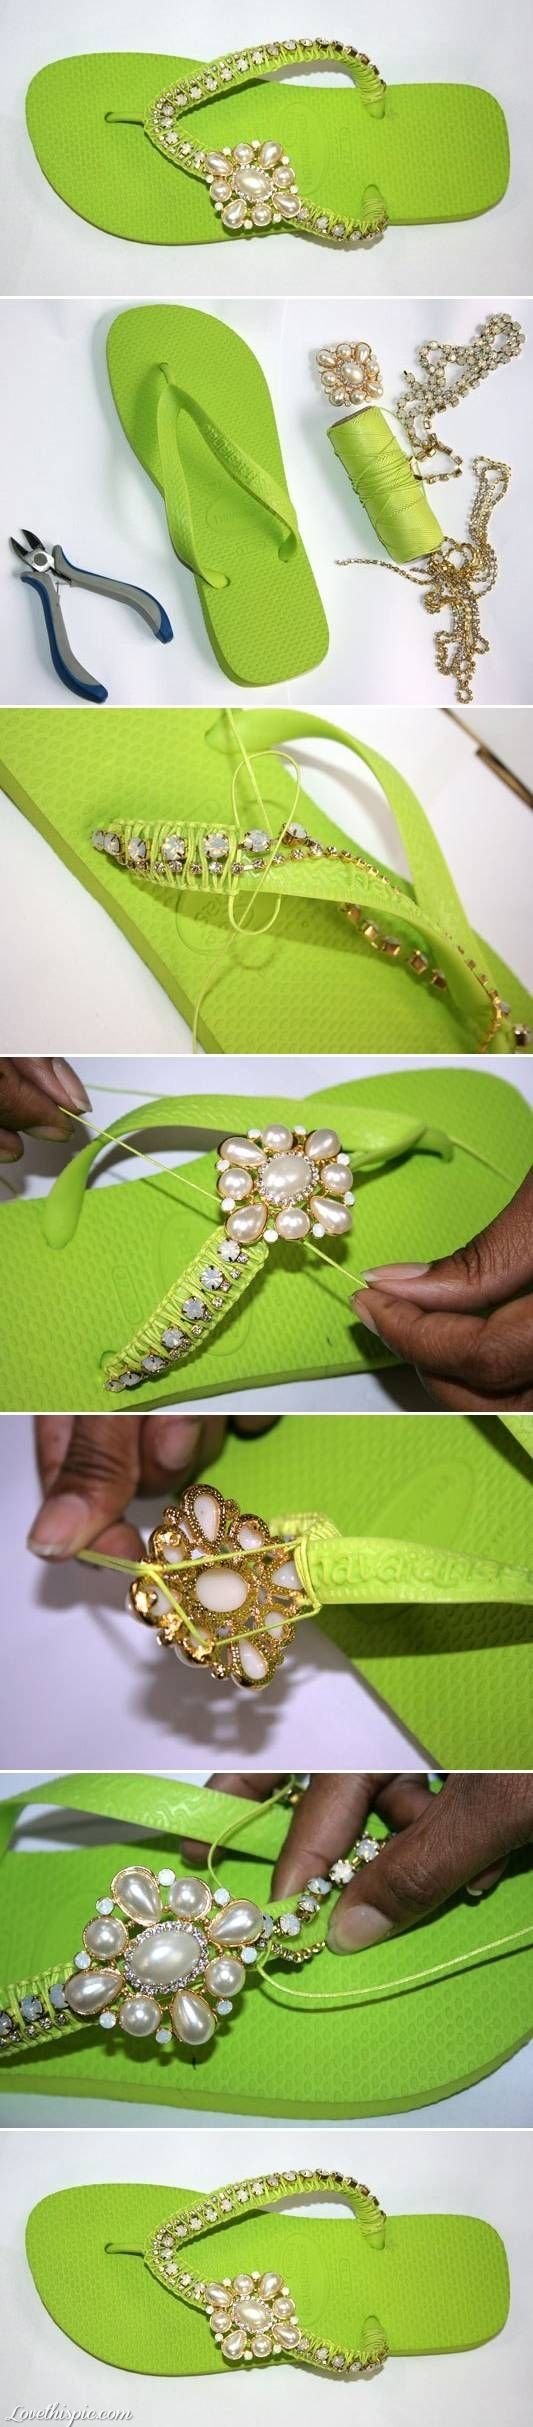 DIY Flip Flops. Fun & Easy concept. Great way to use costume jewelry or even things you find at a thrift shop.